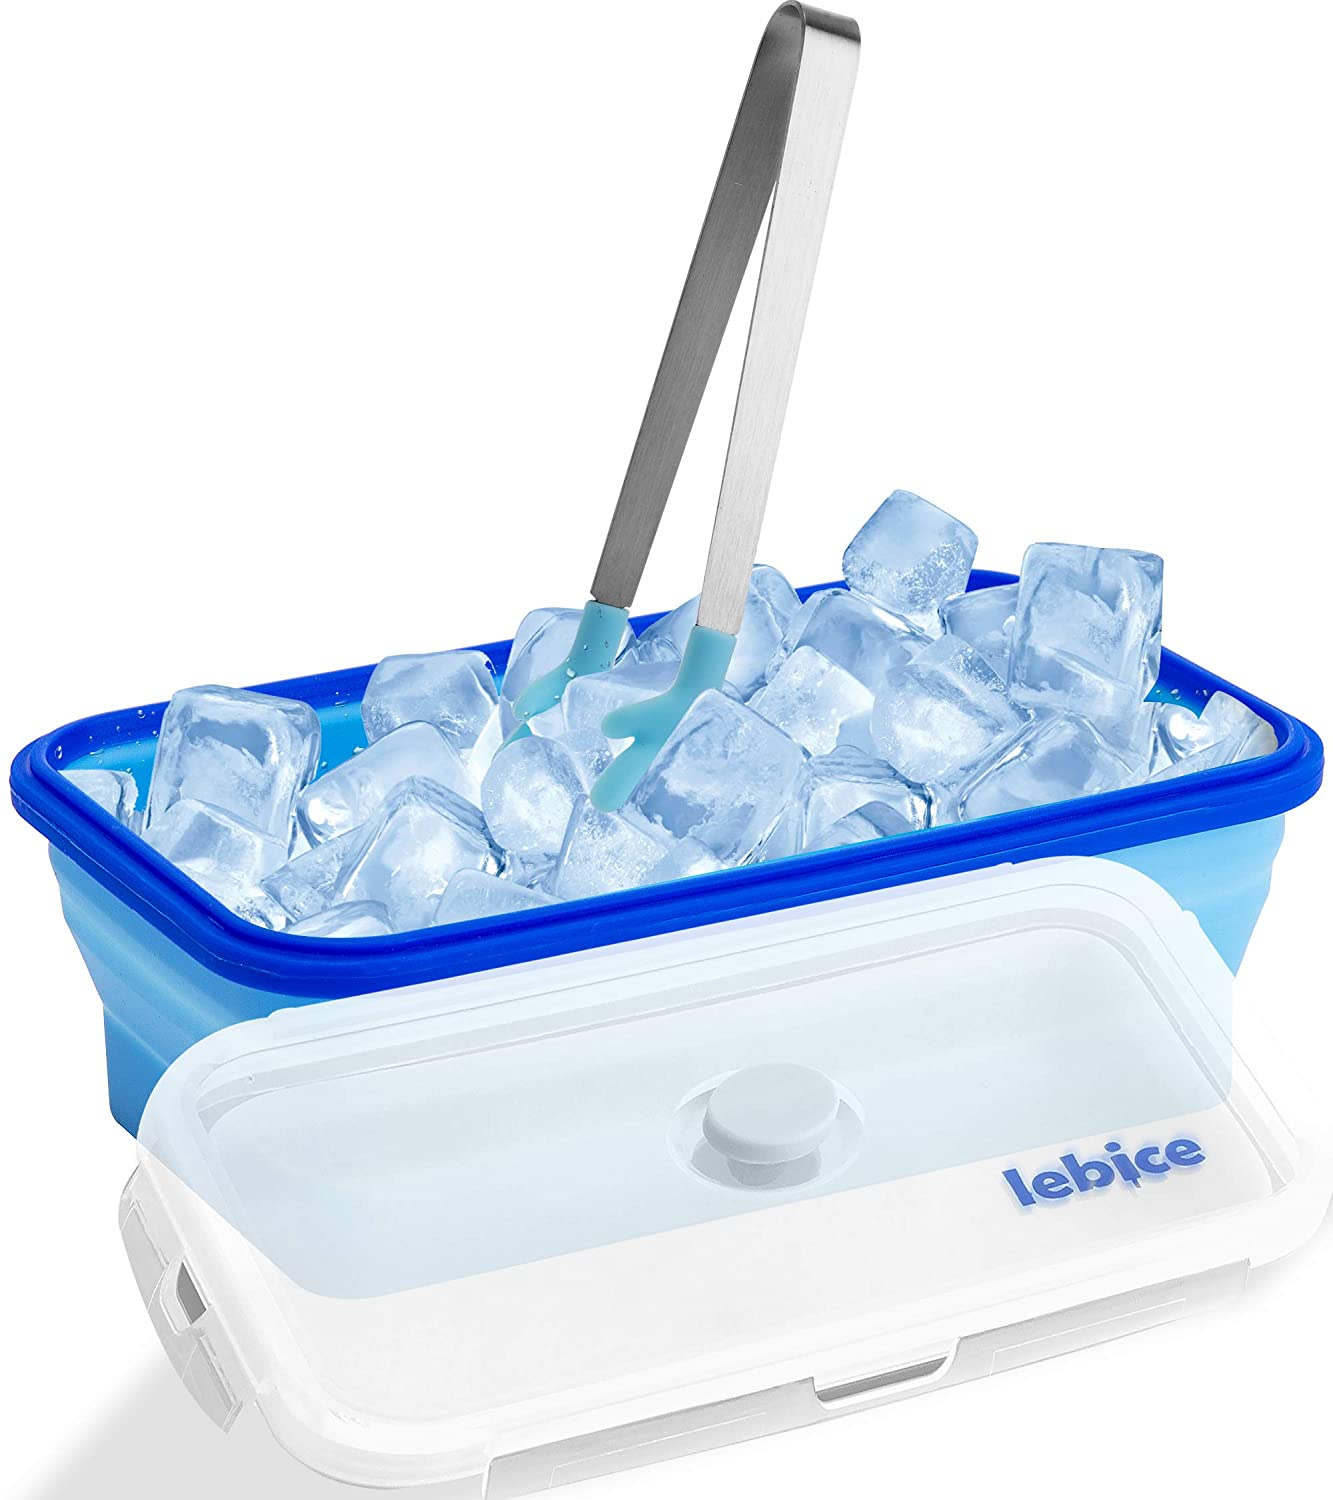 Lebice Ice Cube Bucket Made of Silicon, Ice Cube Freezer Storage Bin, Uniquely Designed Ice Bucket, Suitable For Various Parties, Durable and of + Tongs + Recipy eBook!